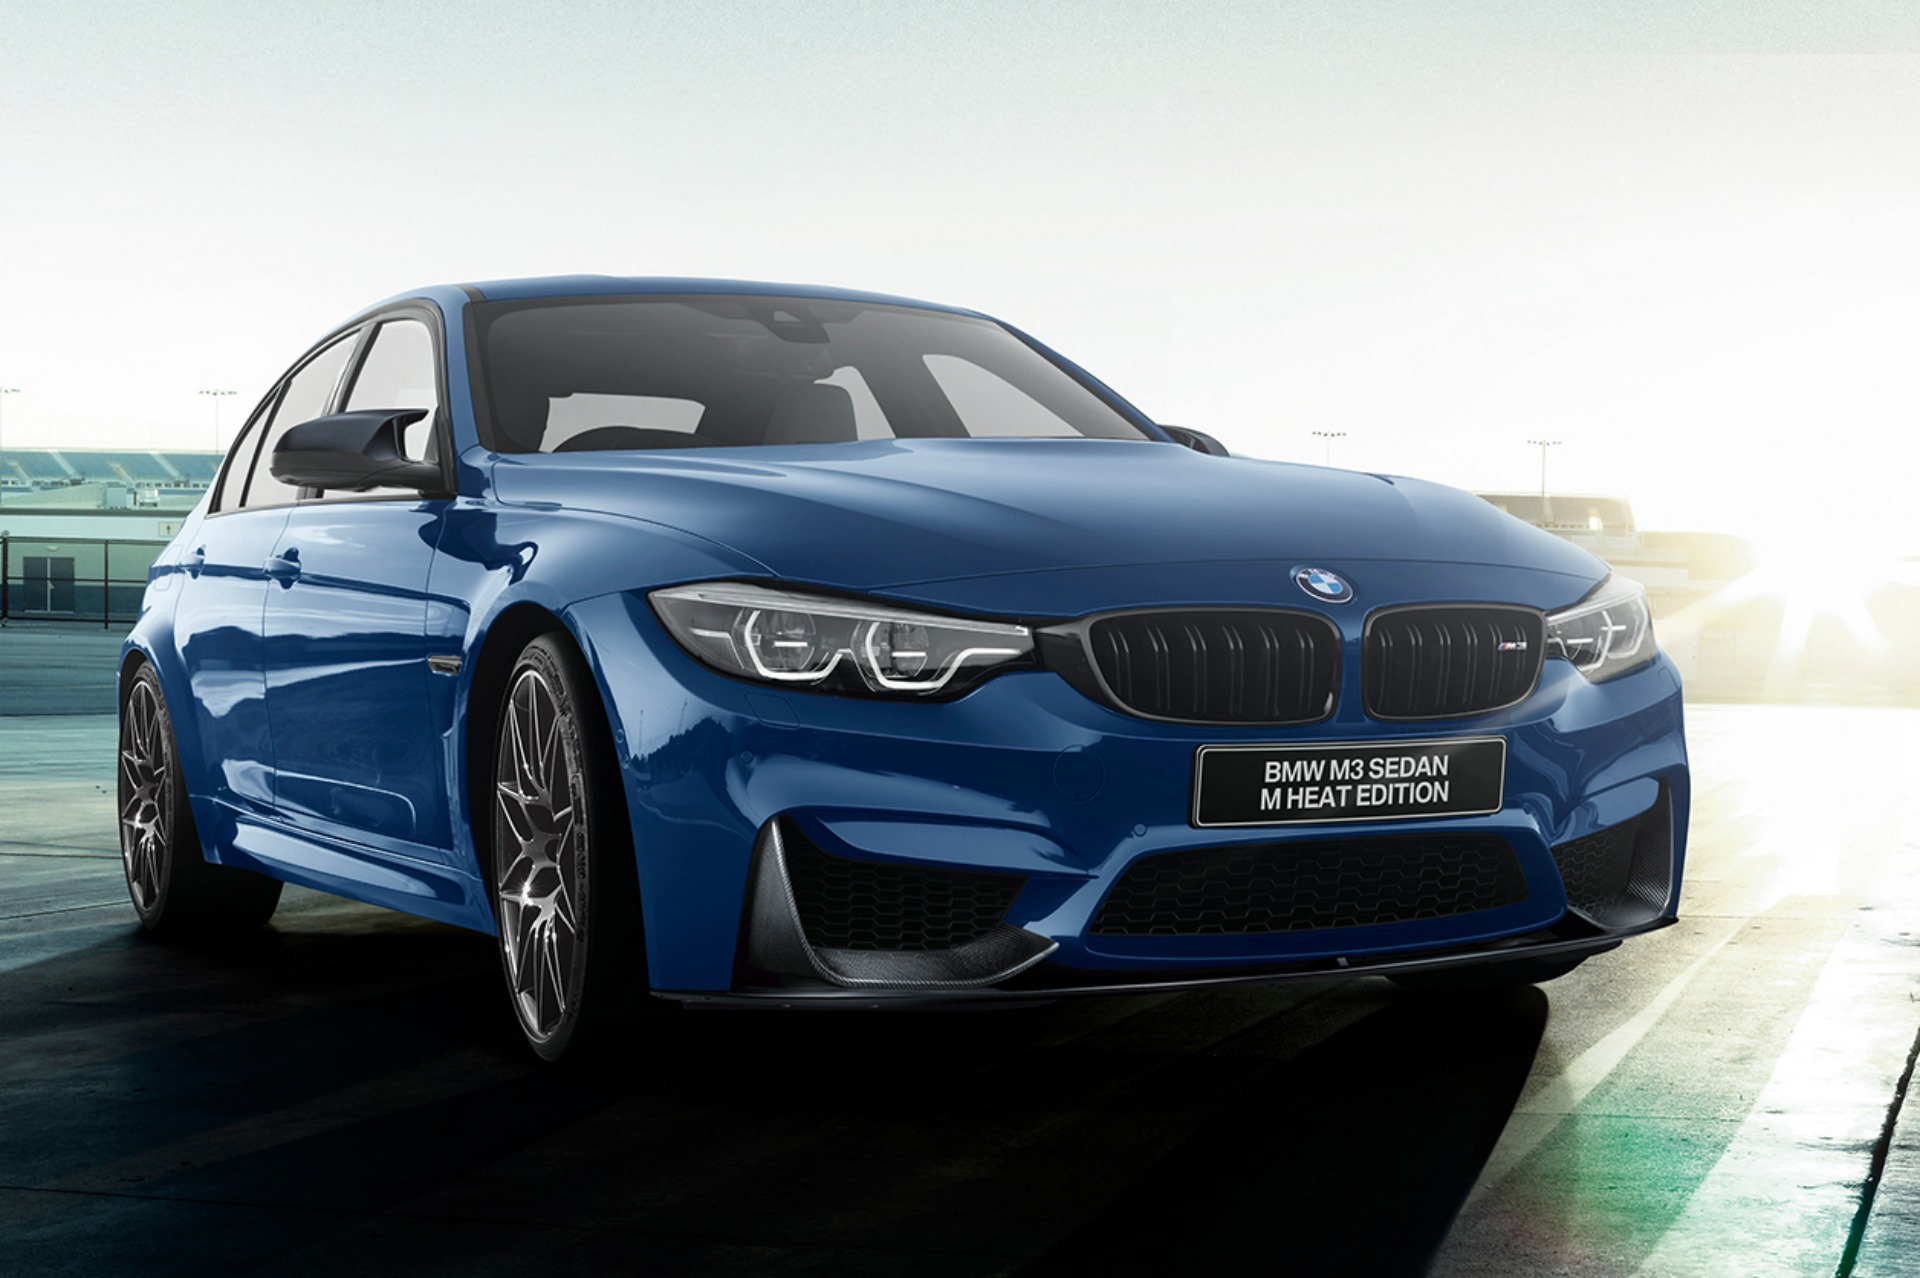 BMW M3 Heat Edition 2018